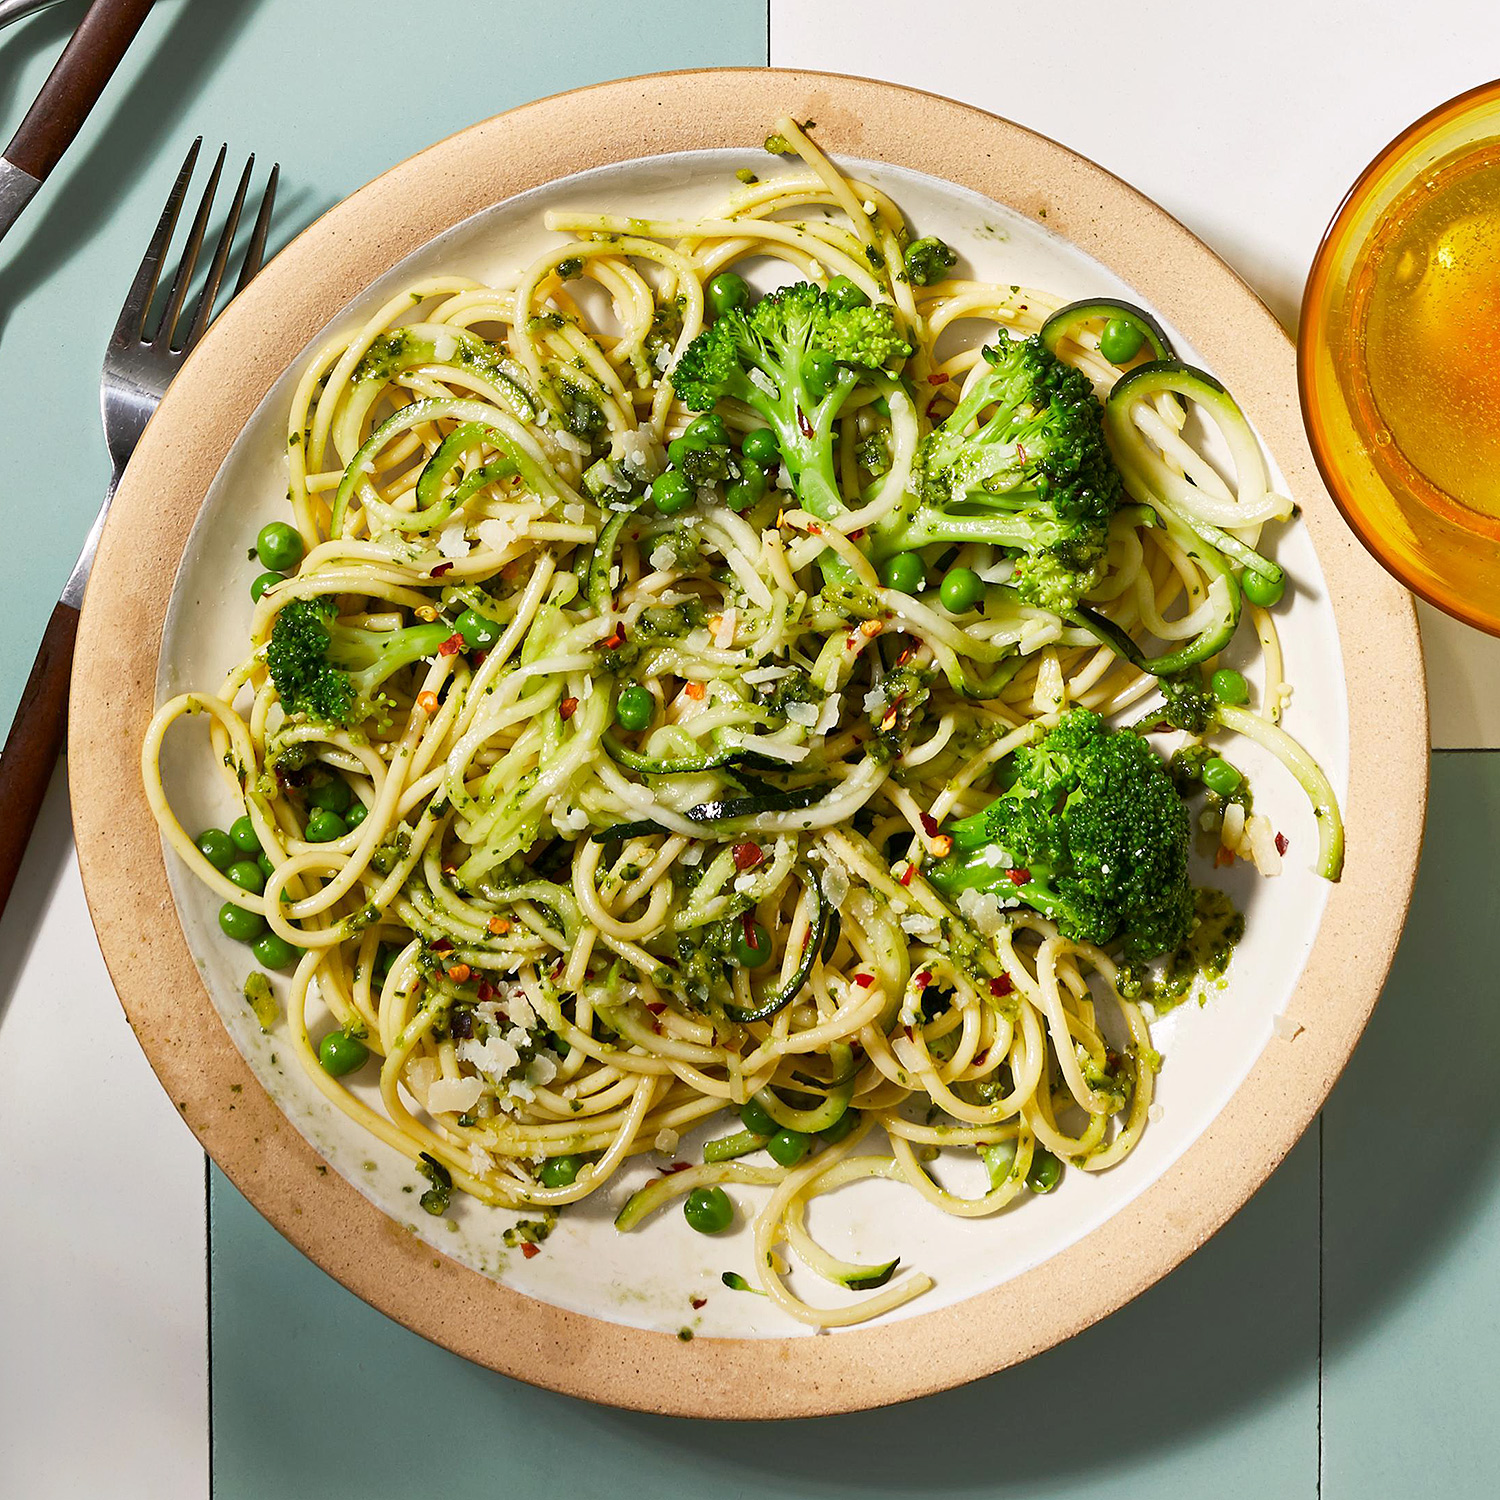 broccoli and pesto with spaghetti